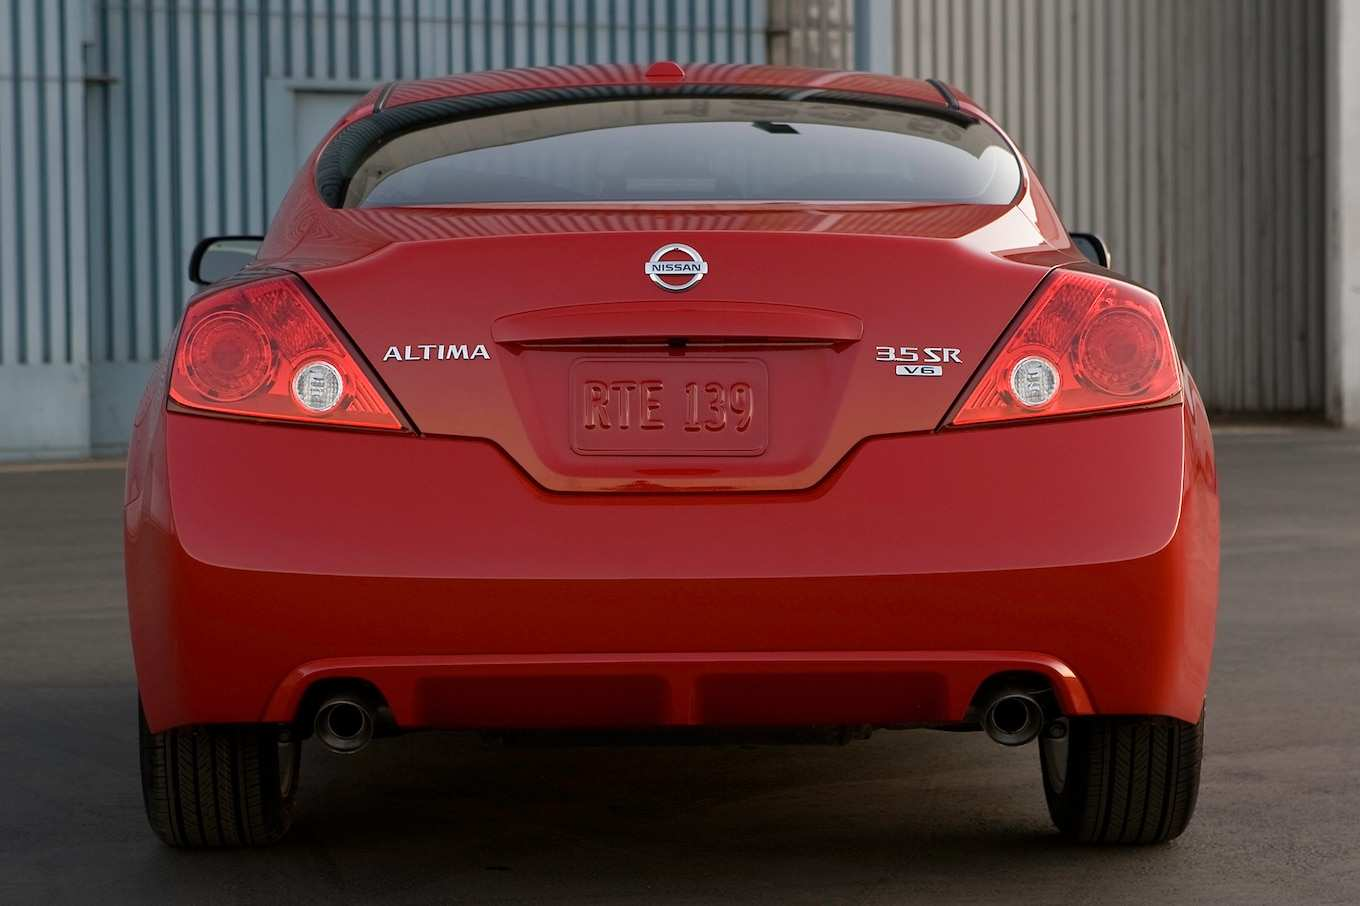 53 Concept of 2013 Nissan Altima Coupe Exterior with 2013 Nissan Altima Coupe